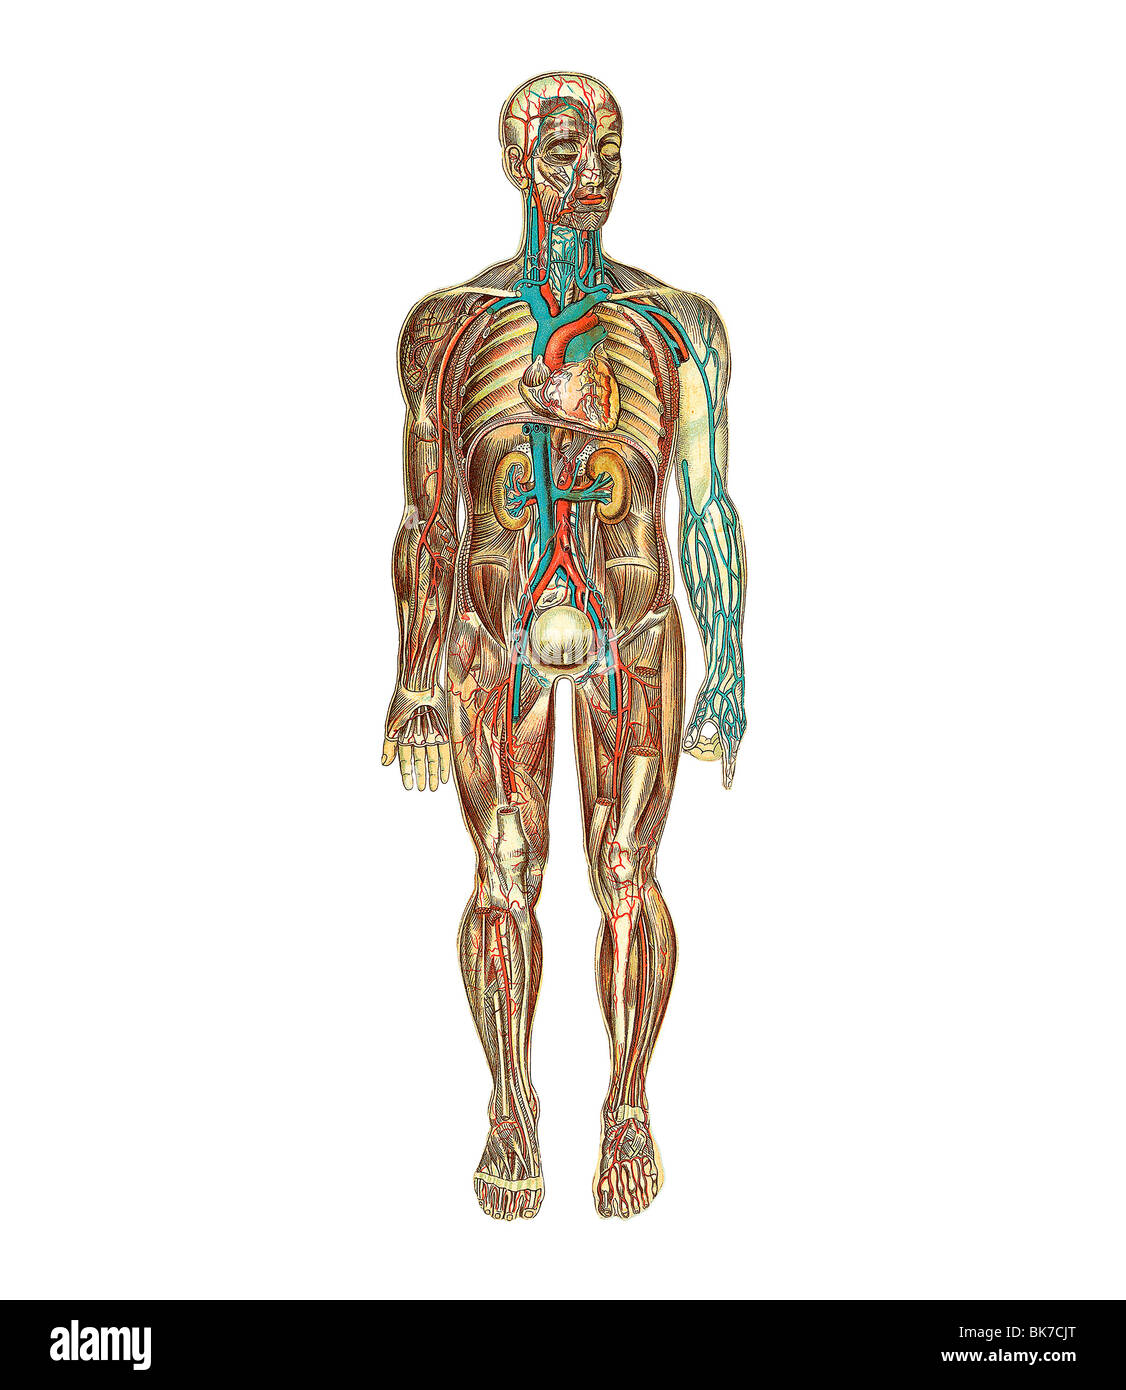 Organs Veins Stockfotos & Organs Veins Bilder - Alamy